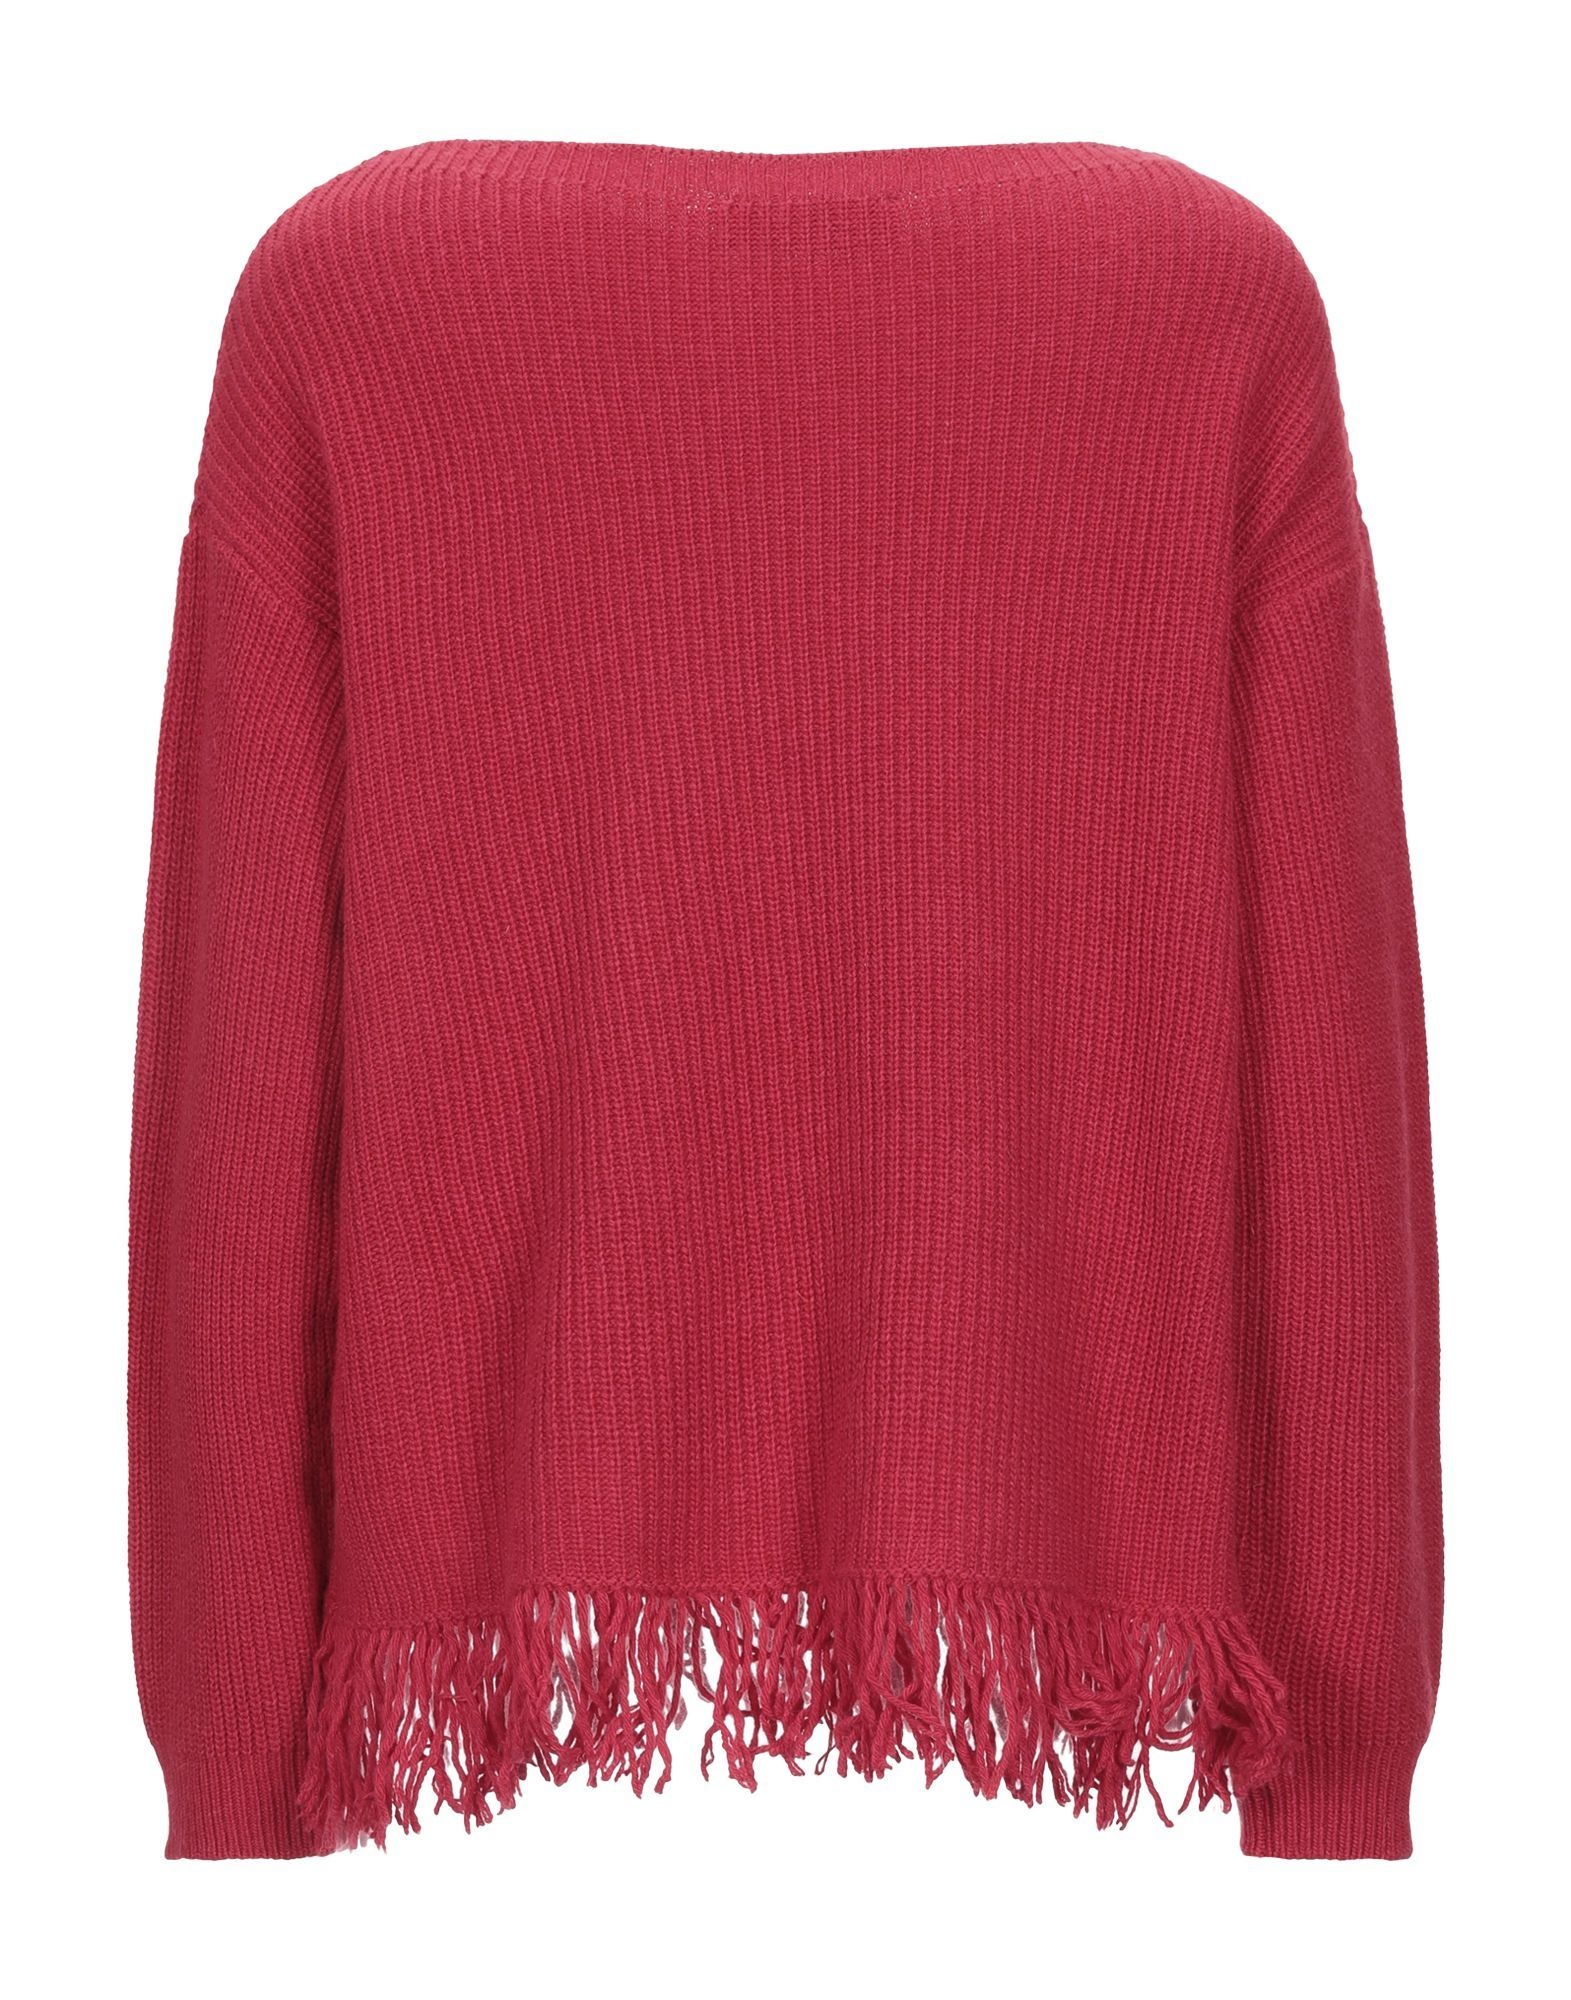 Kaos Red Sequin Knit Jumper